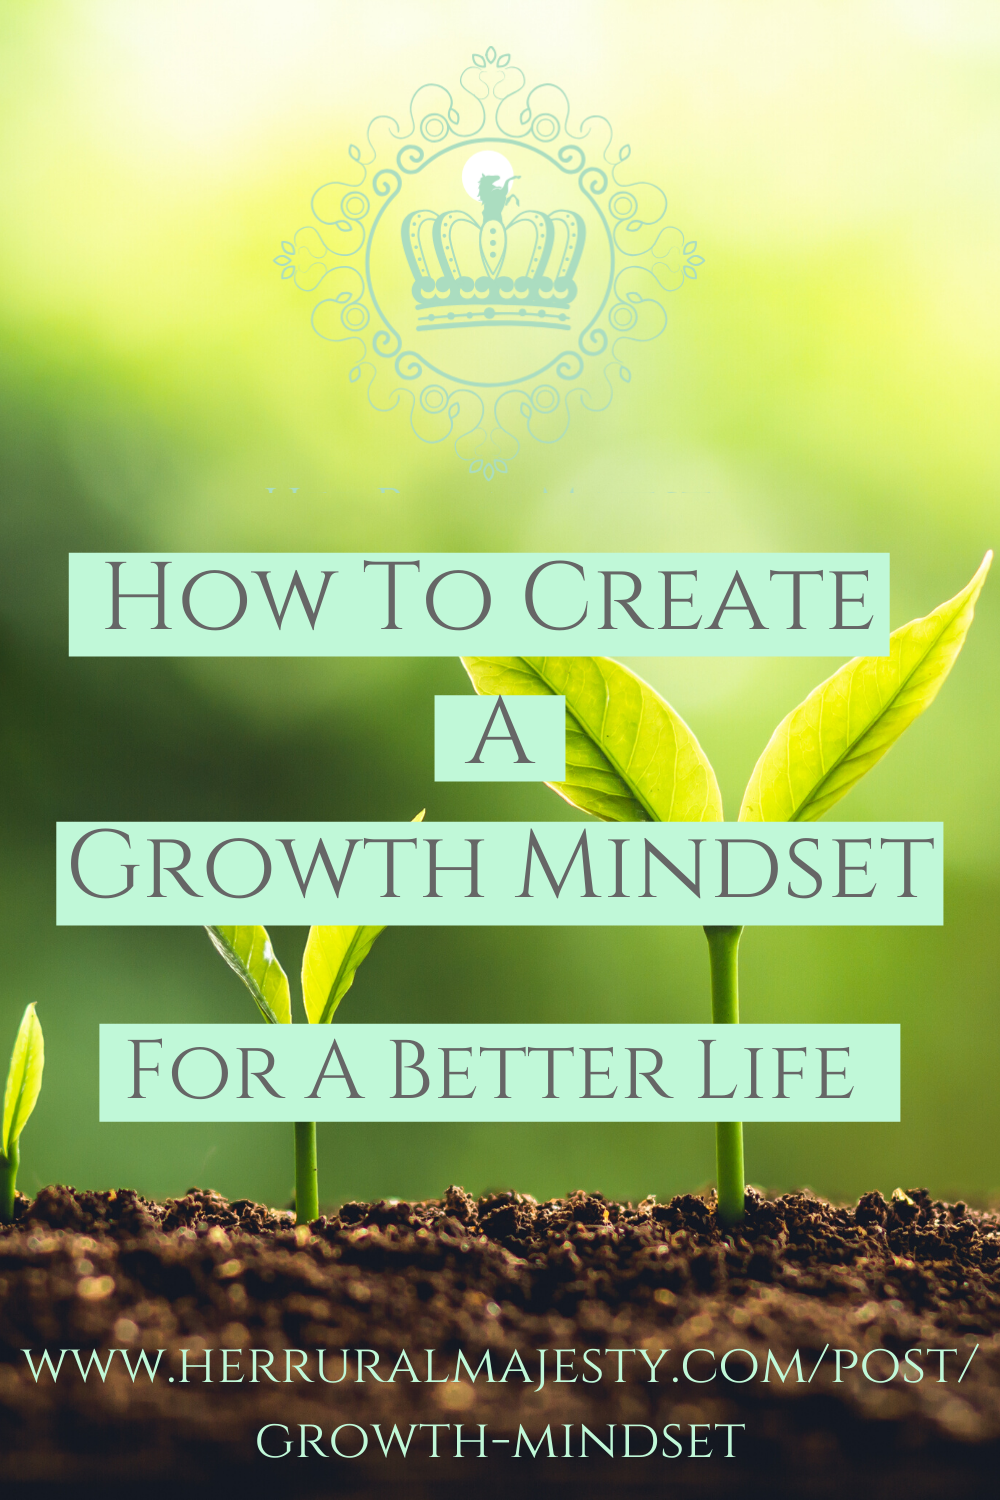 How To Achieve A Growth Mindset For A Better Life